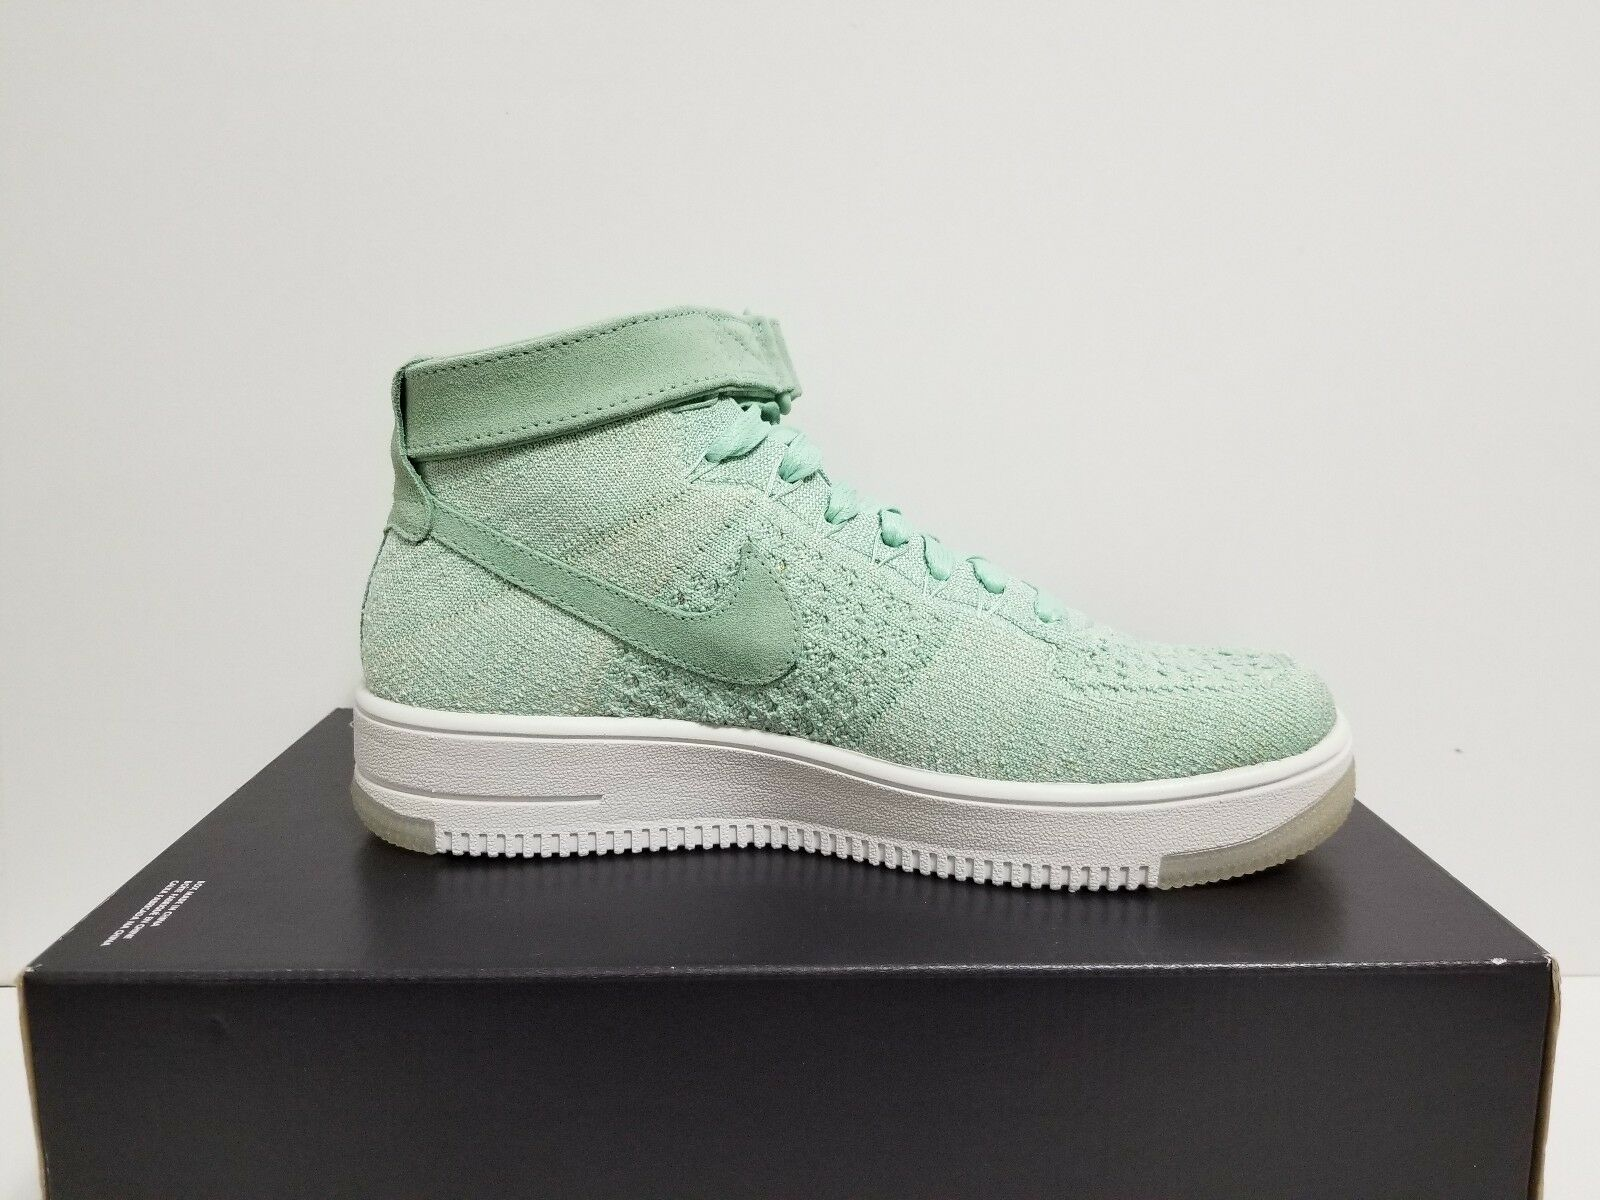 timeless design dc0f5 116a9 ... WMNS NIKE AIR FORCE 1 FLYKNIT FLYKNIT FLYKNIT ENAMEL GREEN ENAMEL GREEN  818018 301 NO